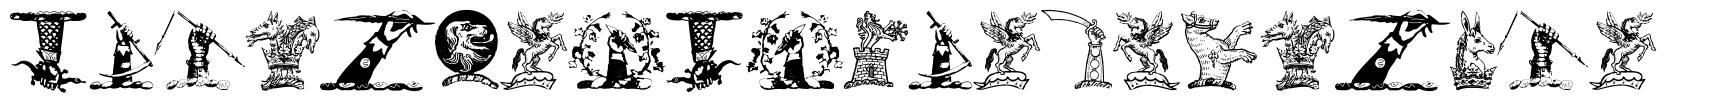 Helmbusch Crest Symbols フォント